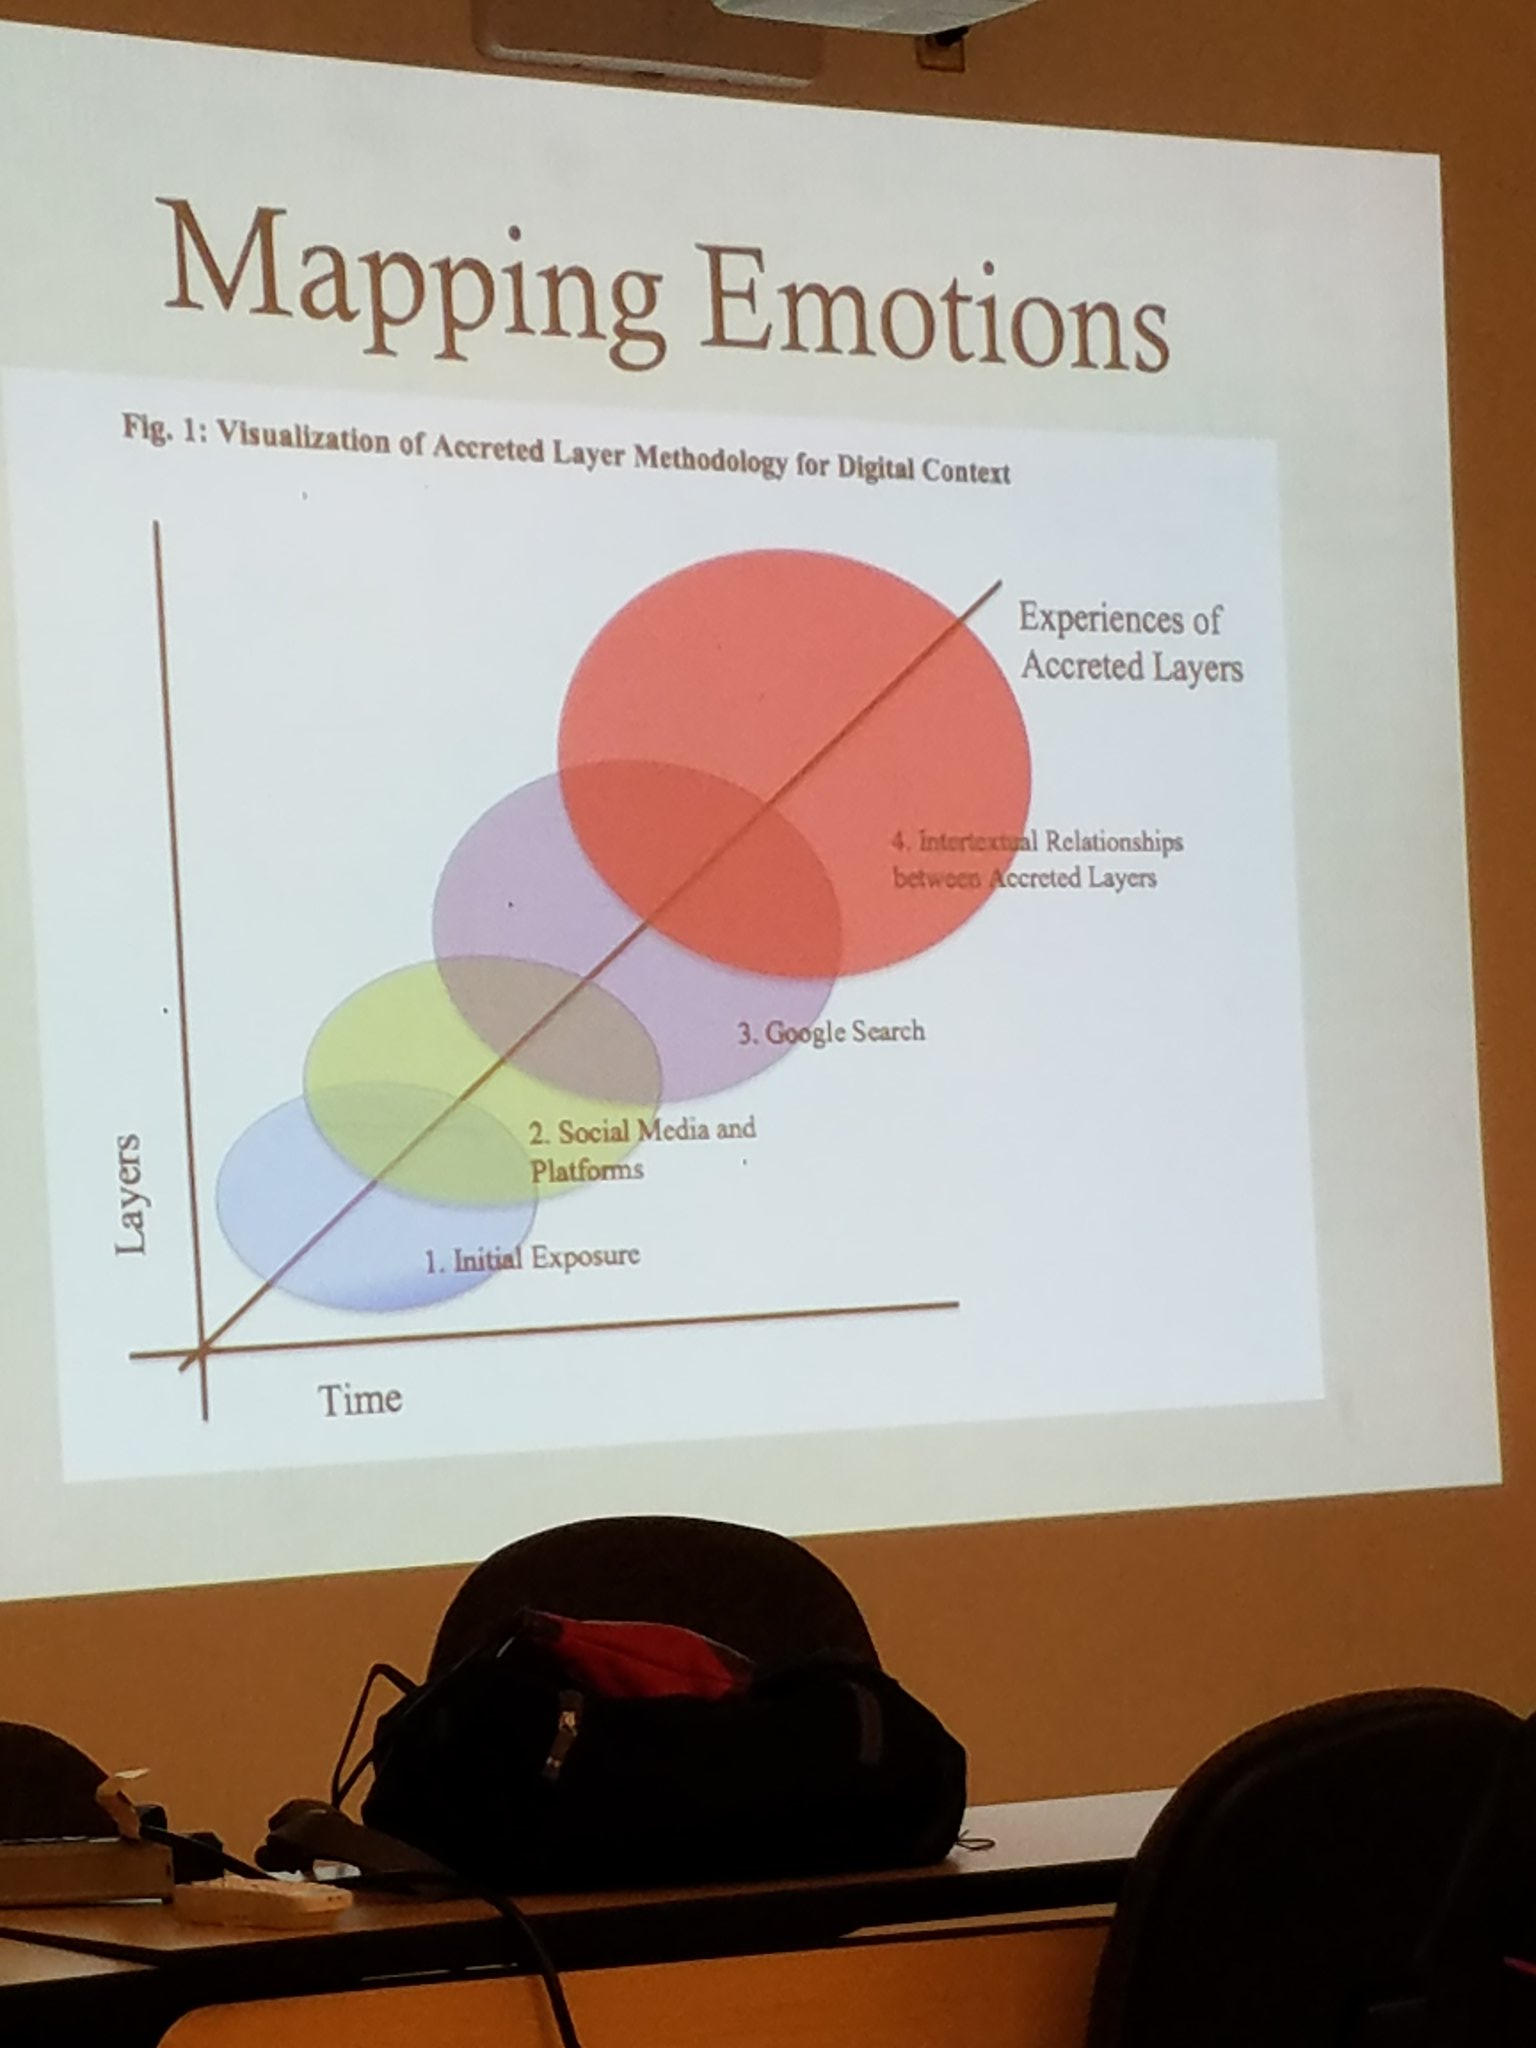 Visualization for mapping emotions in accreted layer methodology for digital context #cwcon #f10 https://t.co/mNxCHUD6ZB